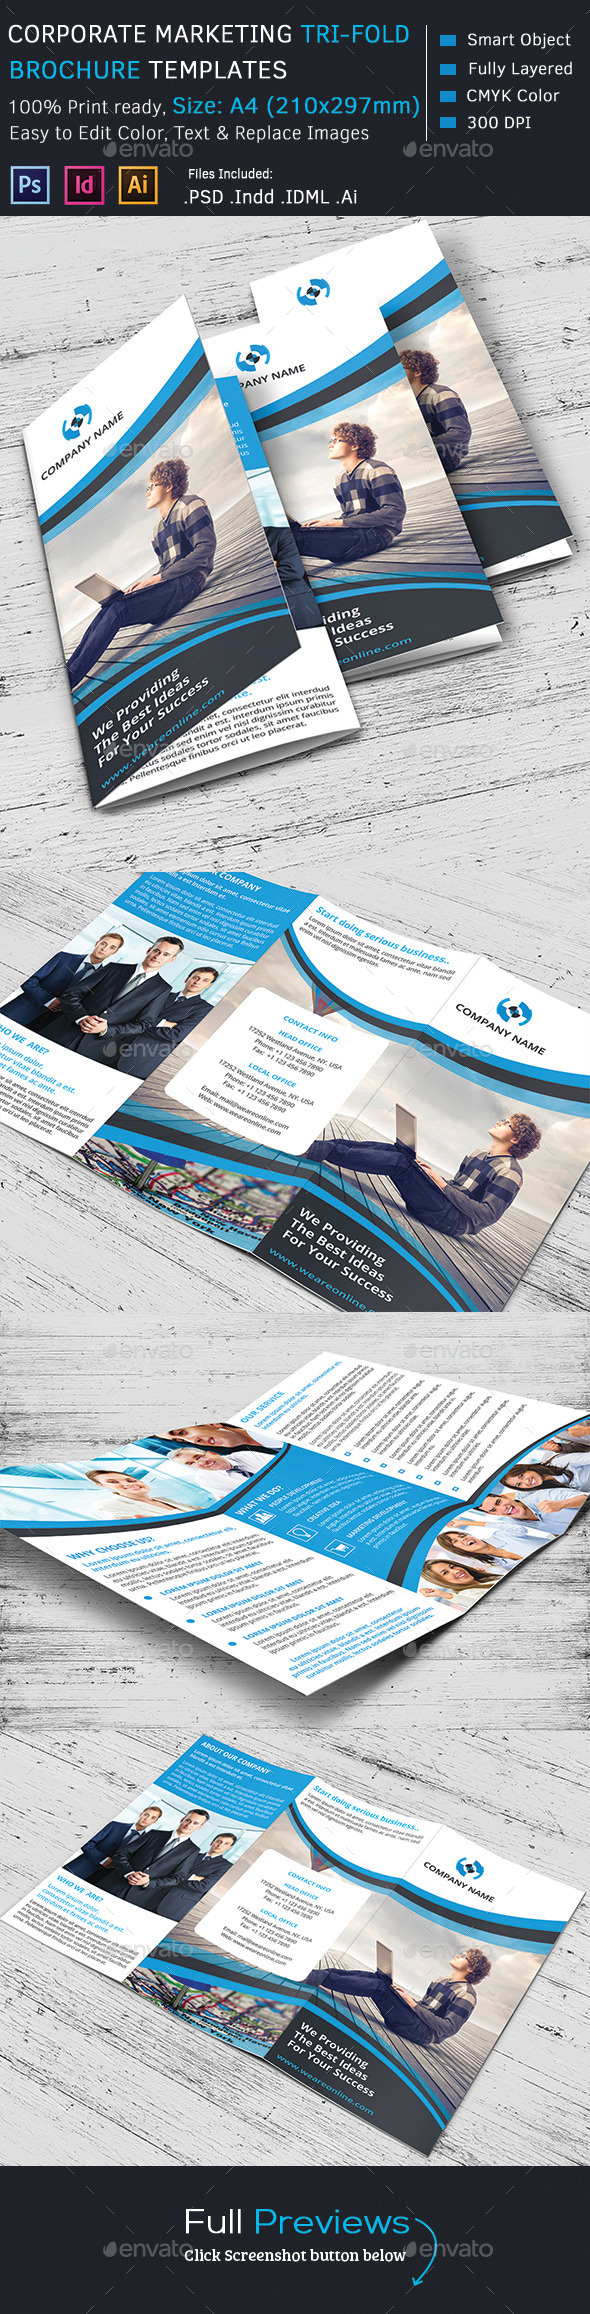 GraphicRiver Corporate Marketing Tri-Fold Brochure 10562381